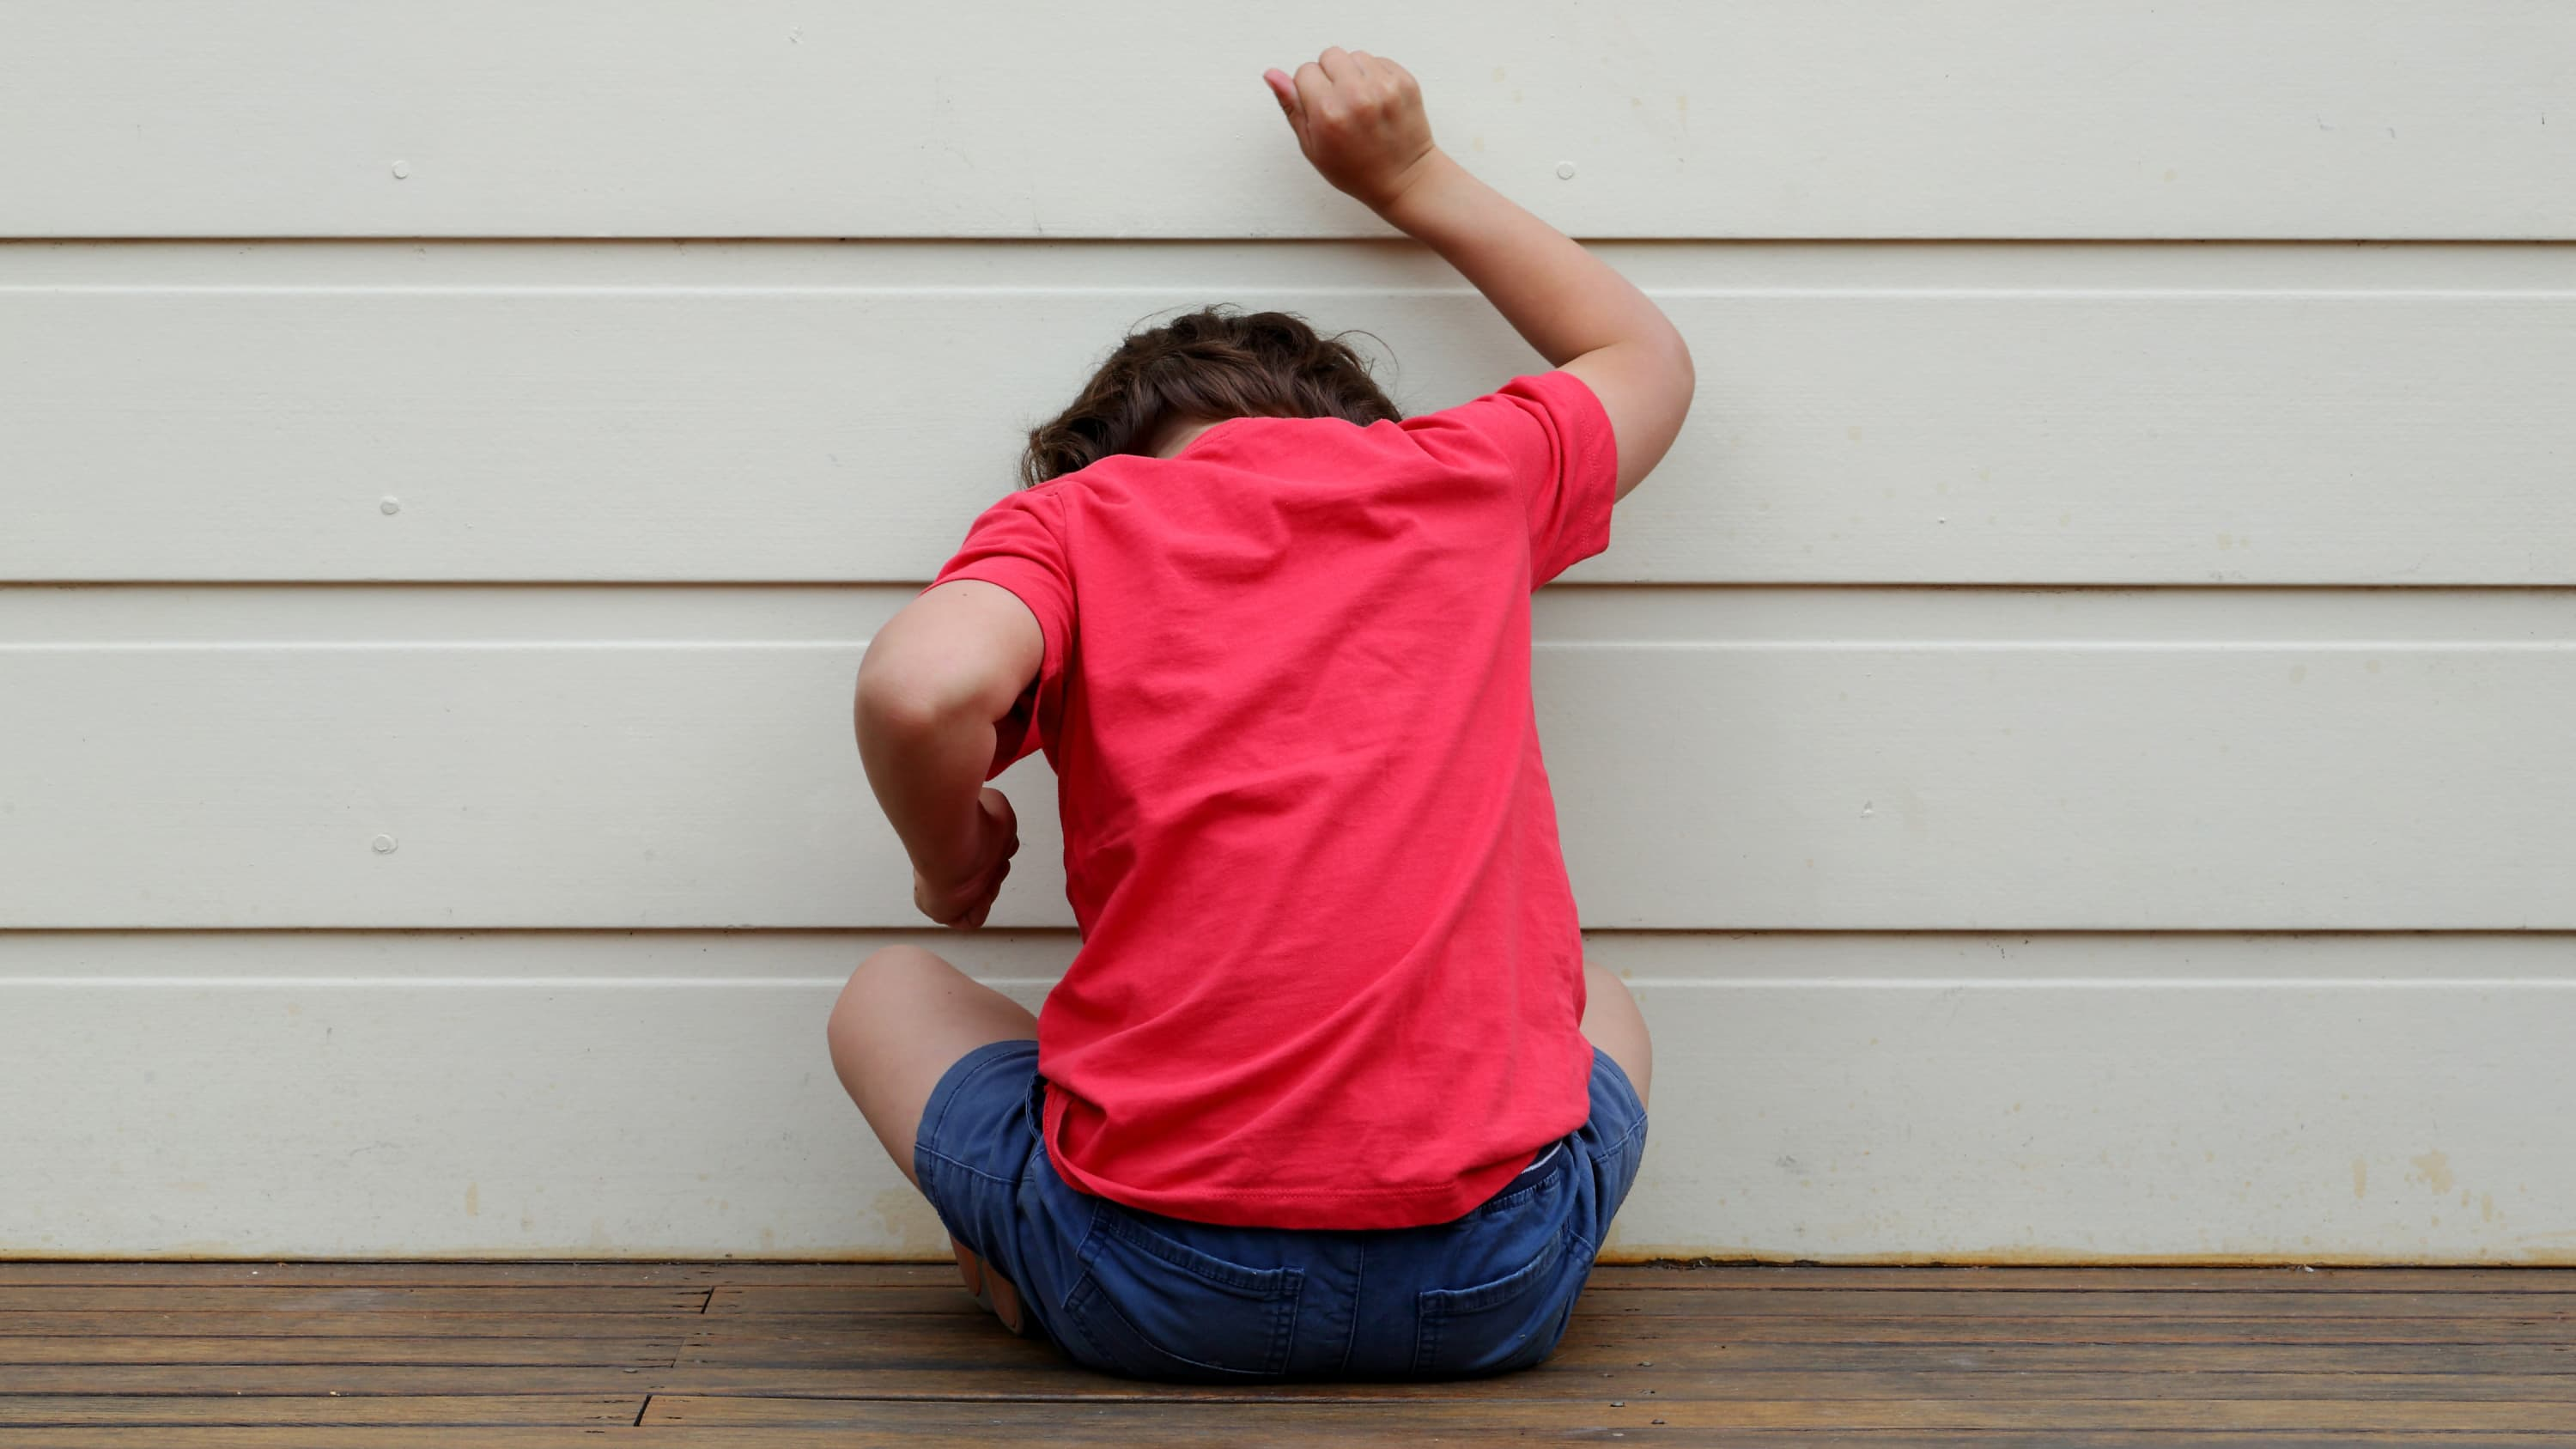 A child in a pink shirt who may have oppositional defiant disorder bangs on a wall.